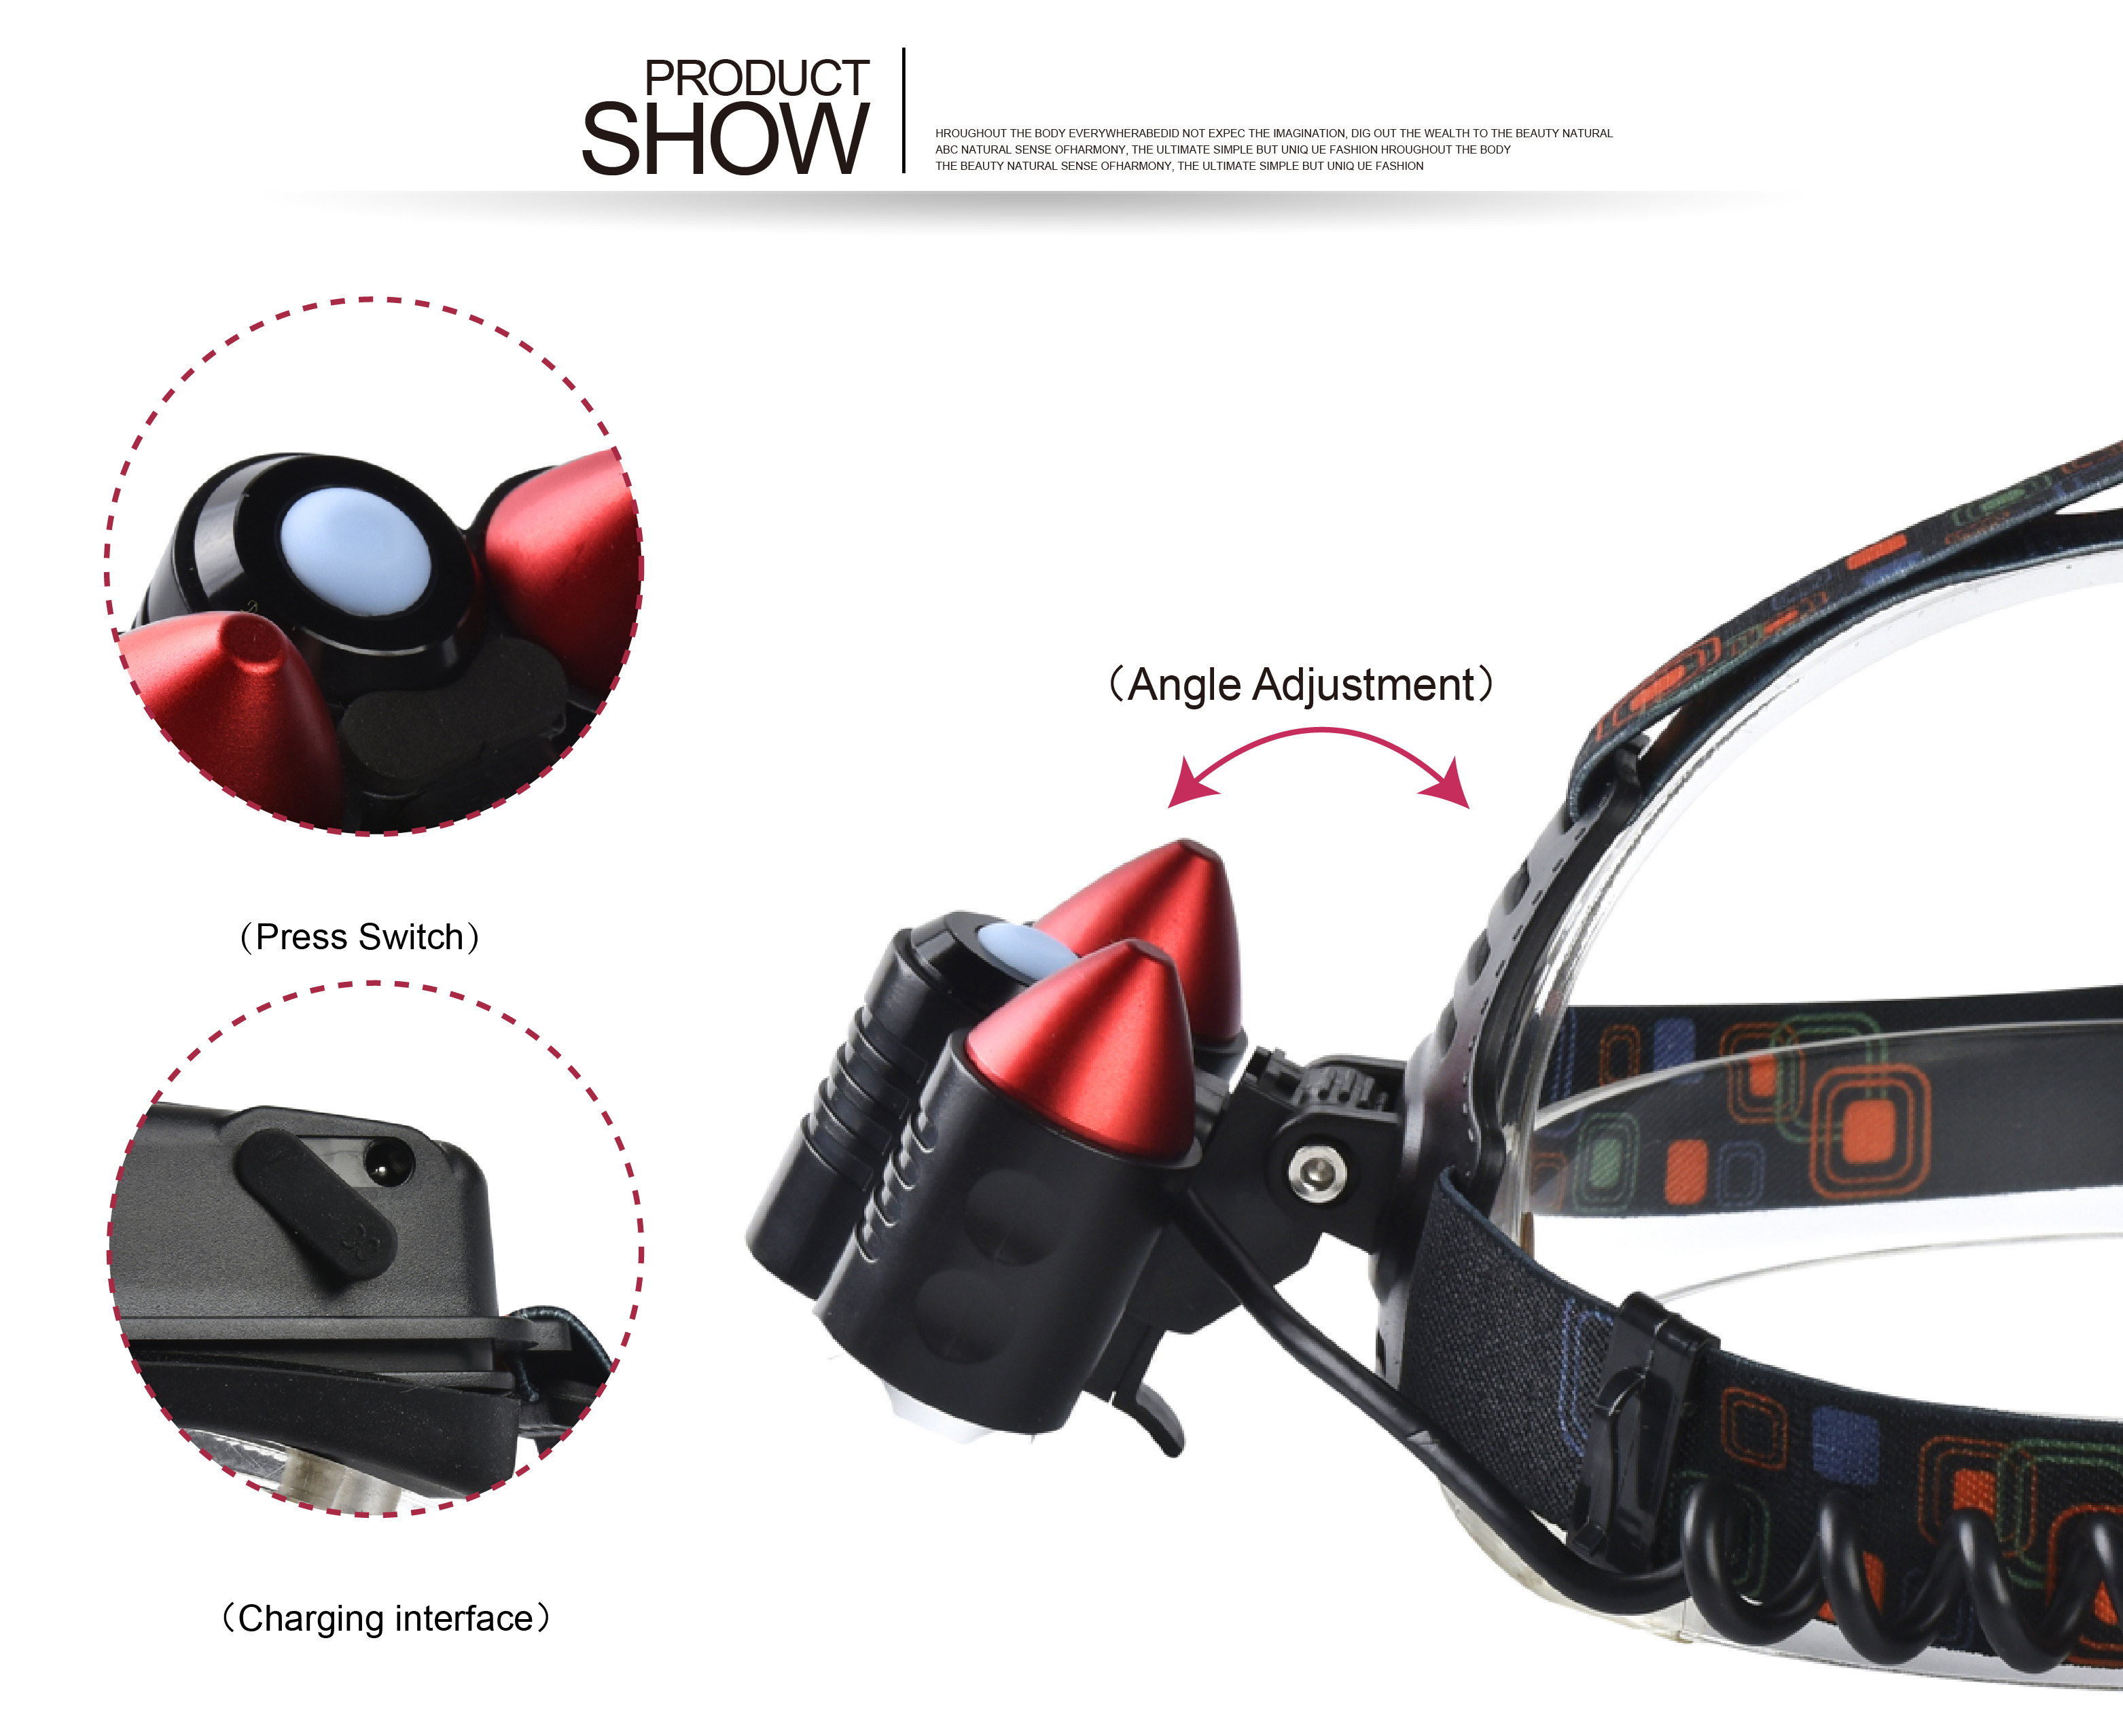 XANES XQ-114 1200 Lumens T6+2XPE+Red LED+Red Laser Bicycle Headlight Outdoor Sports Adjustable